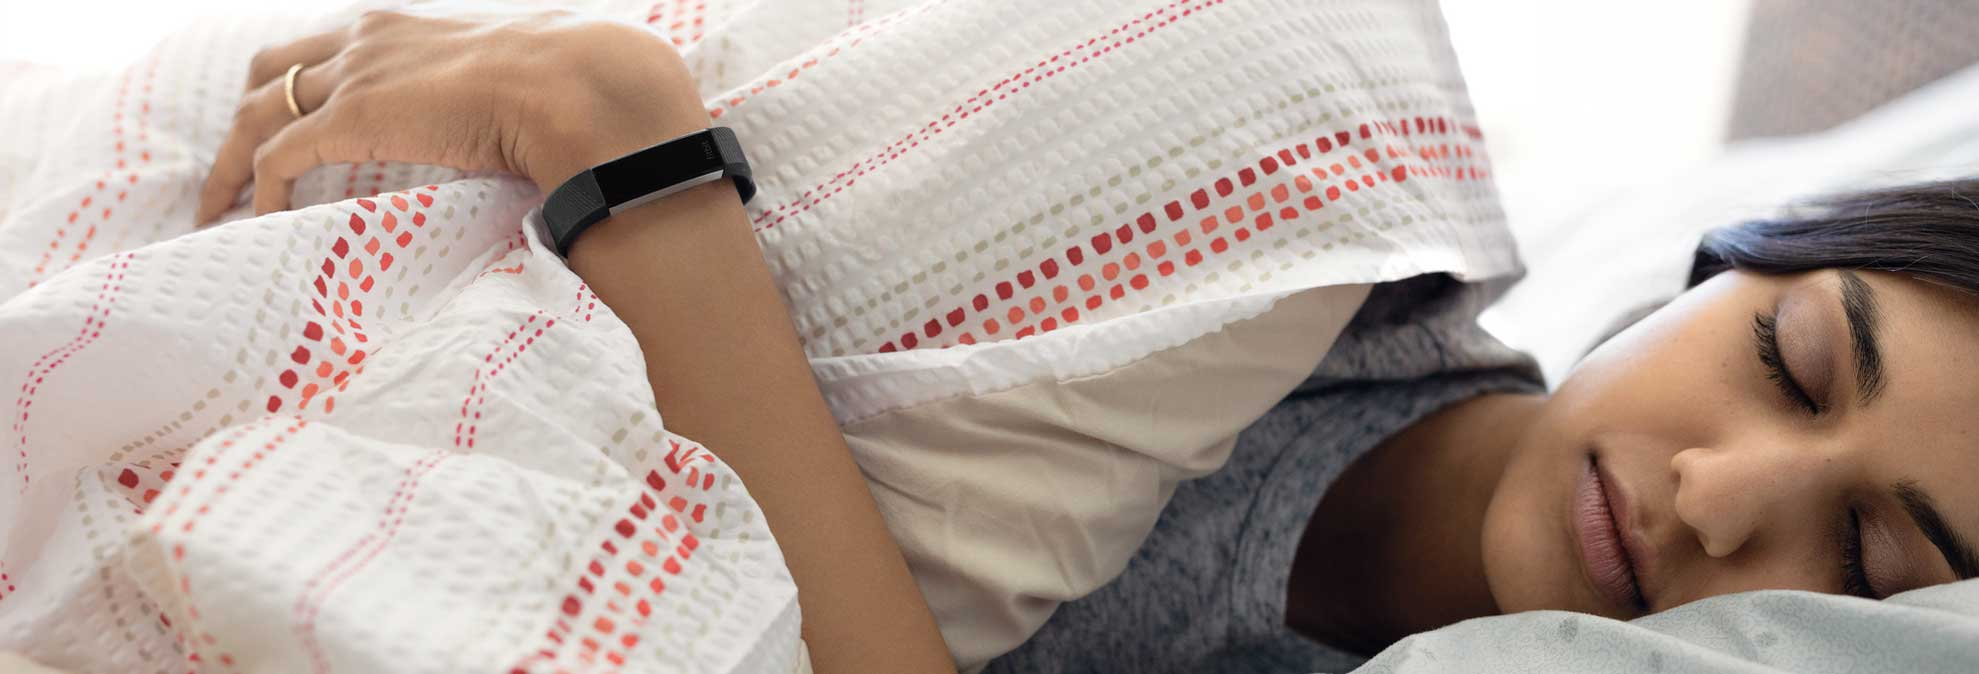 A woman wearing a fitness tracker sleeping